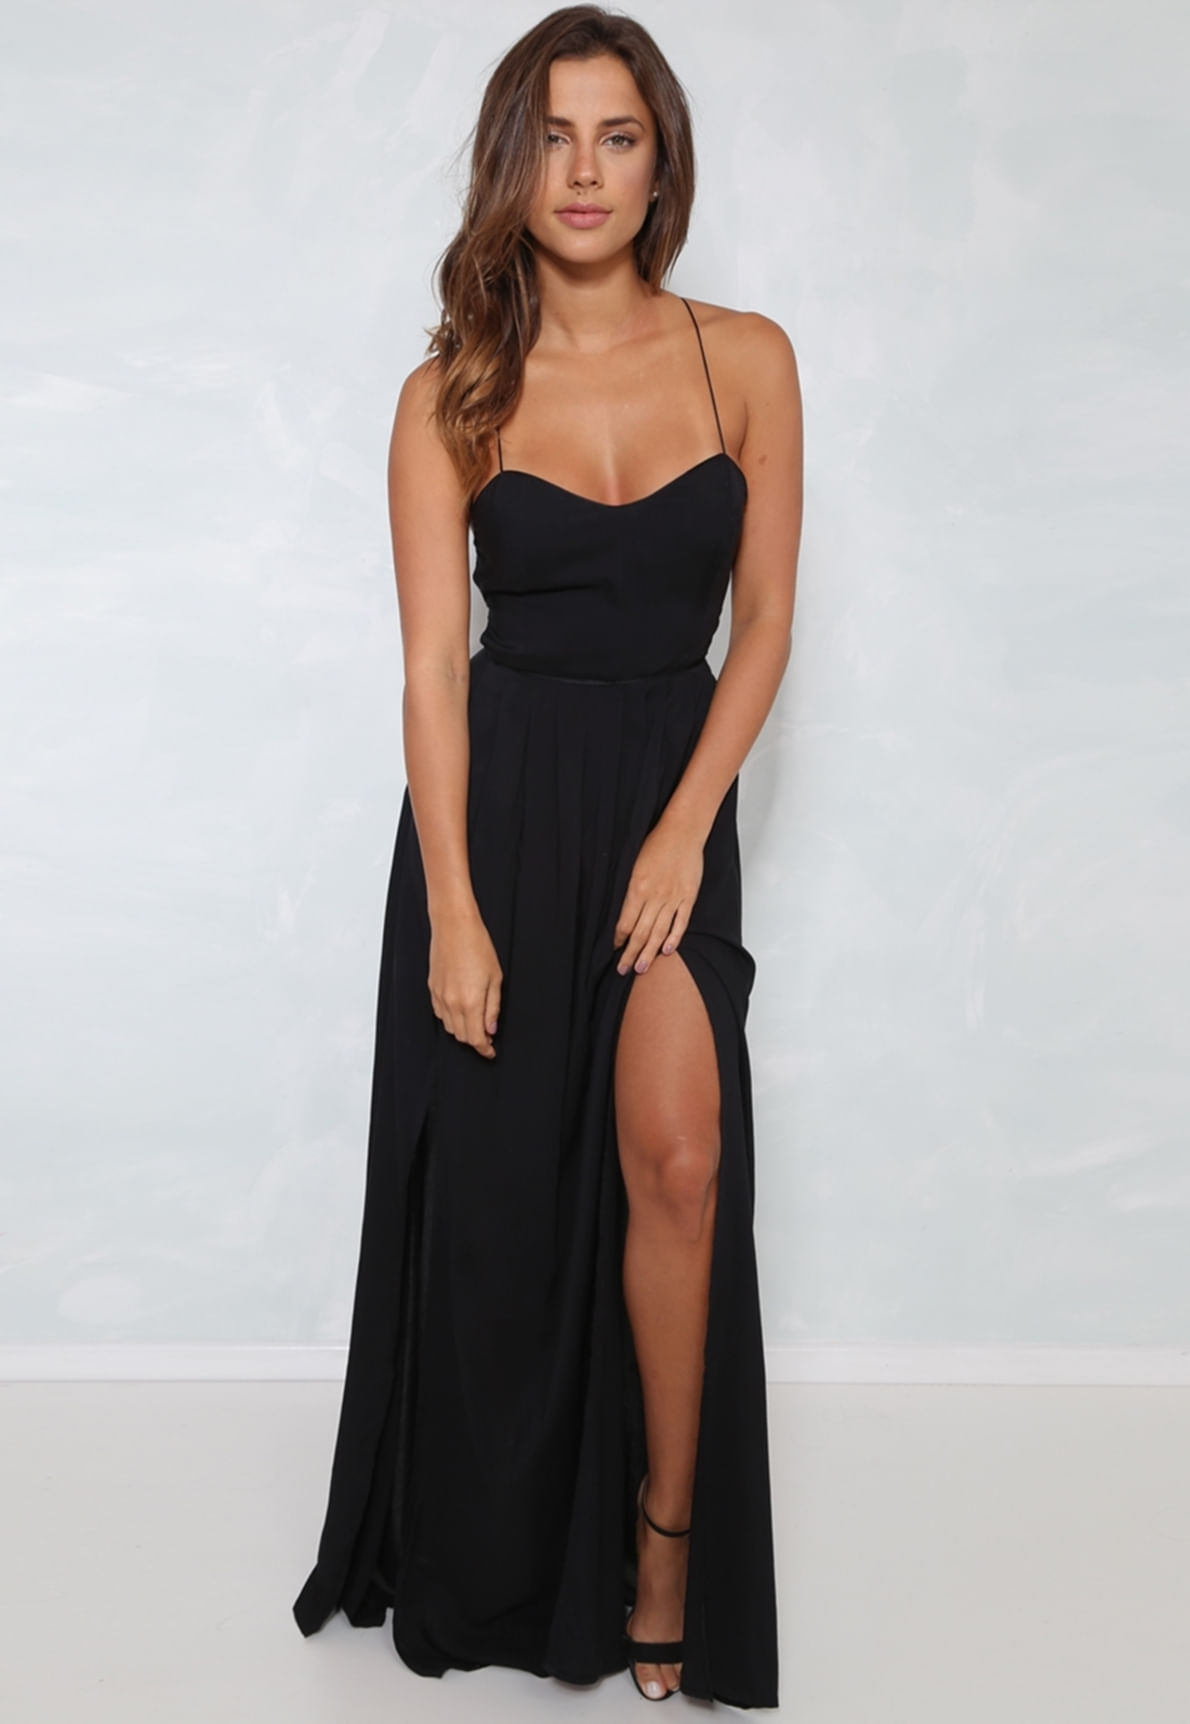 21135-vestido-longo-preto-night-of-rock-01